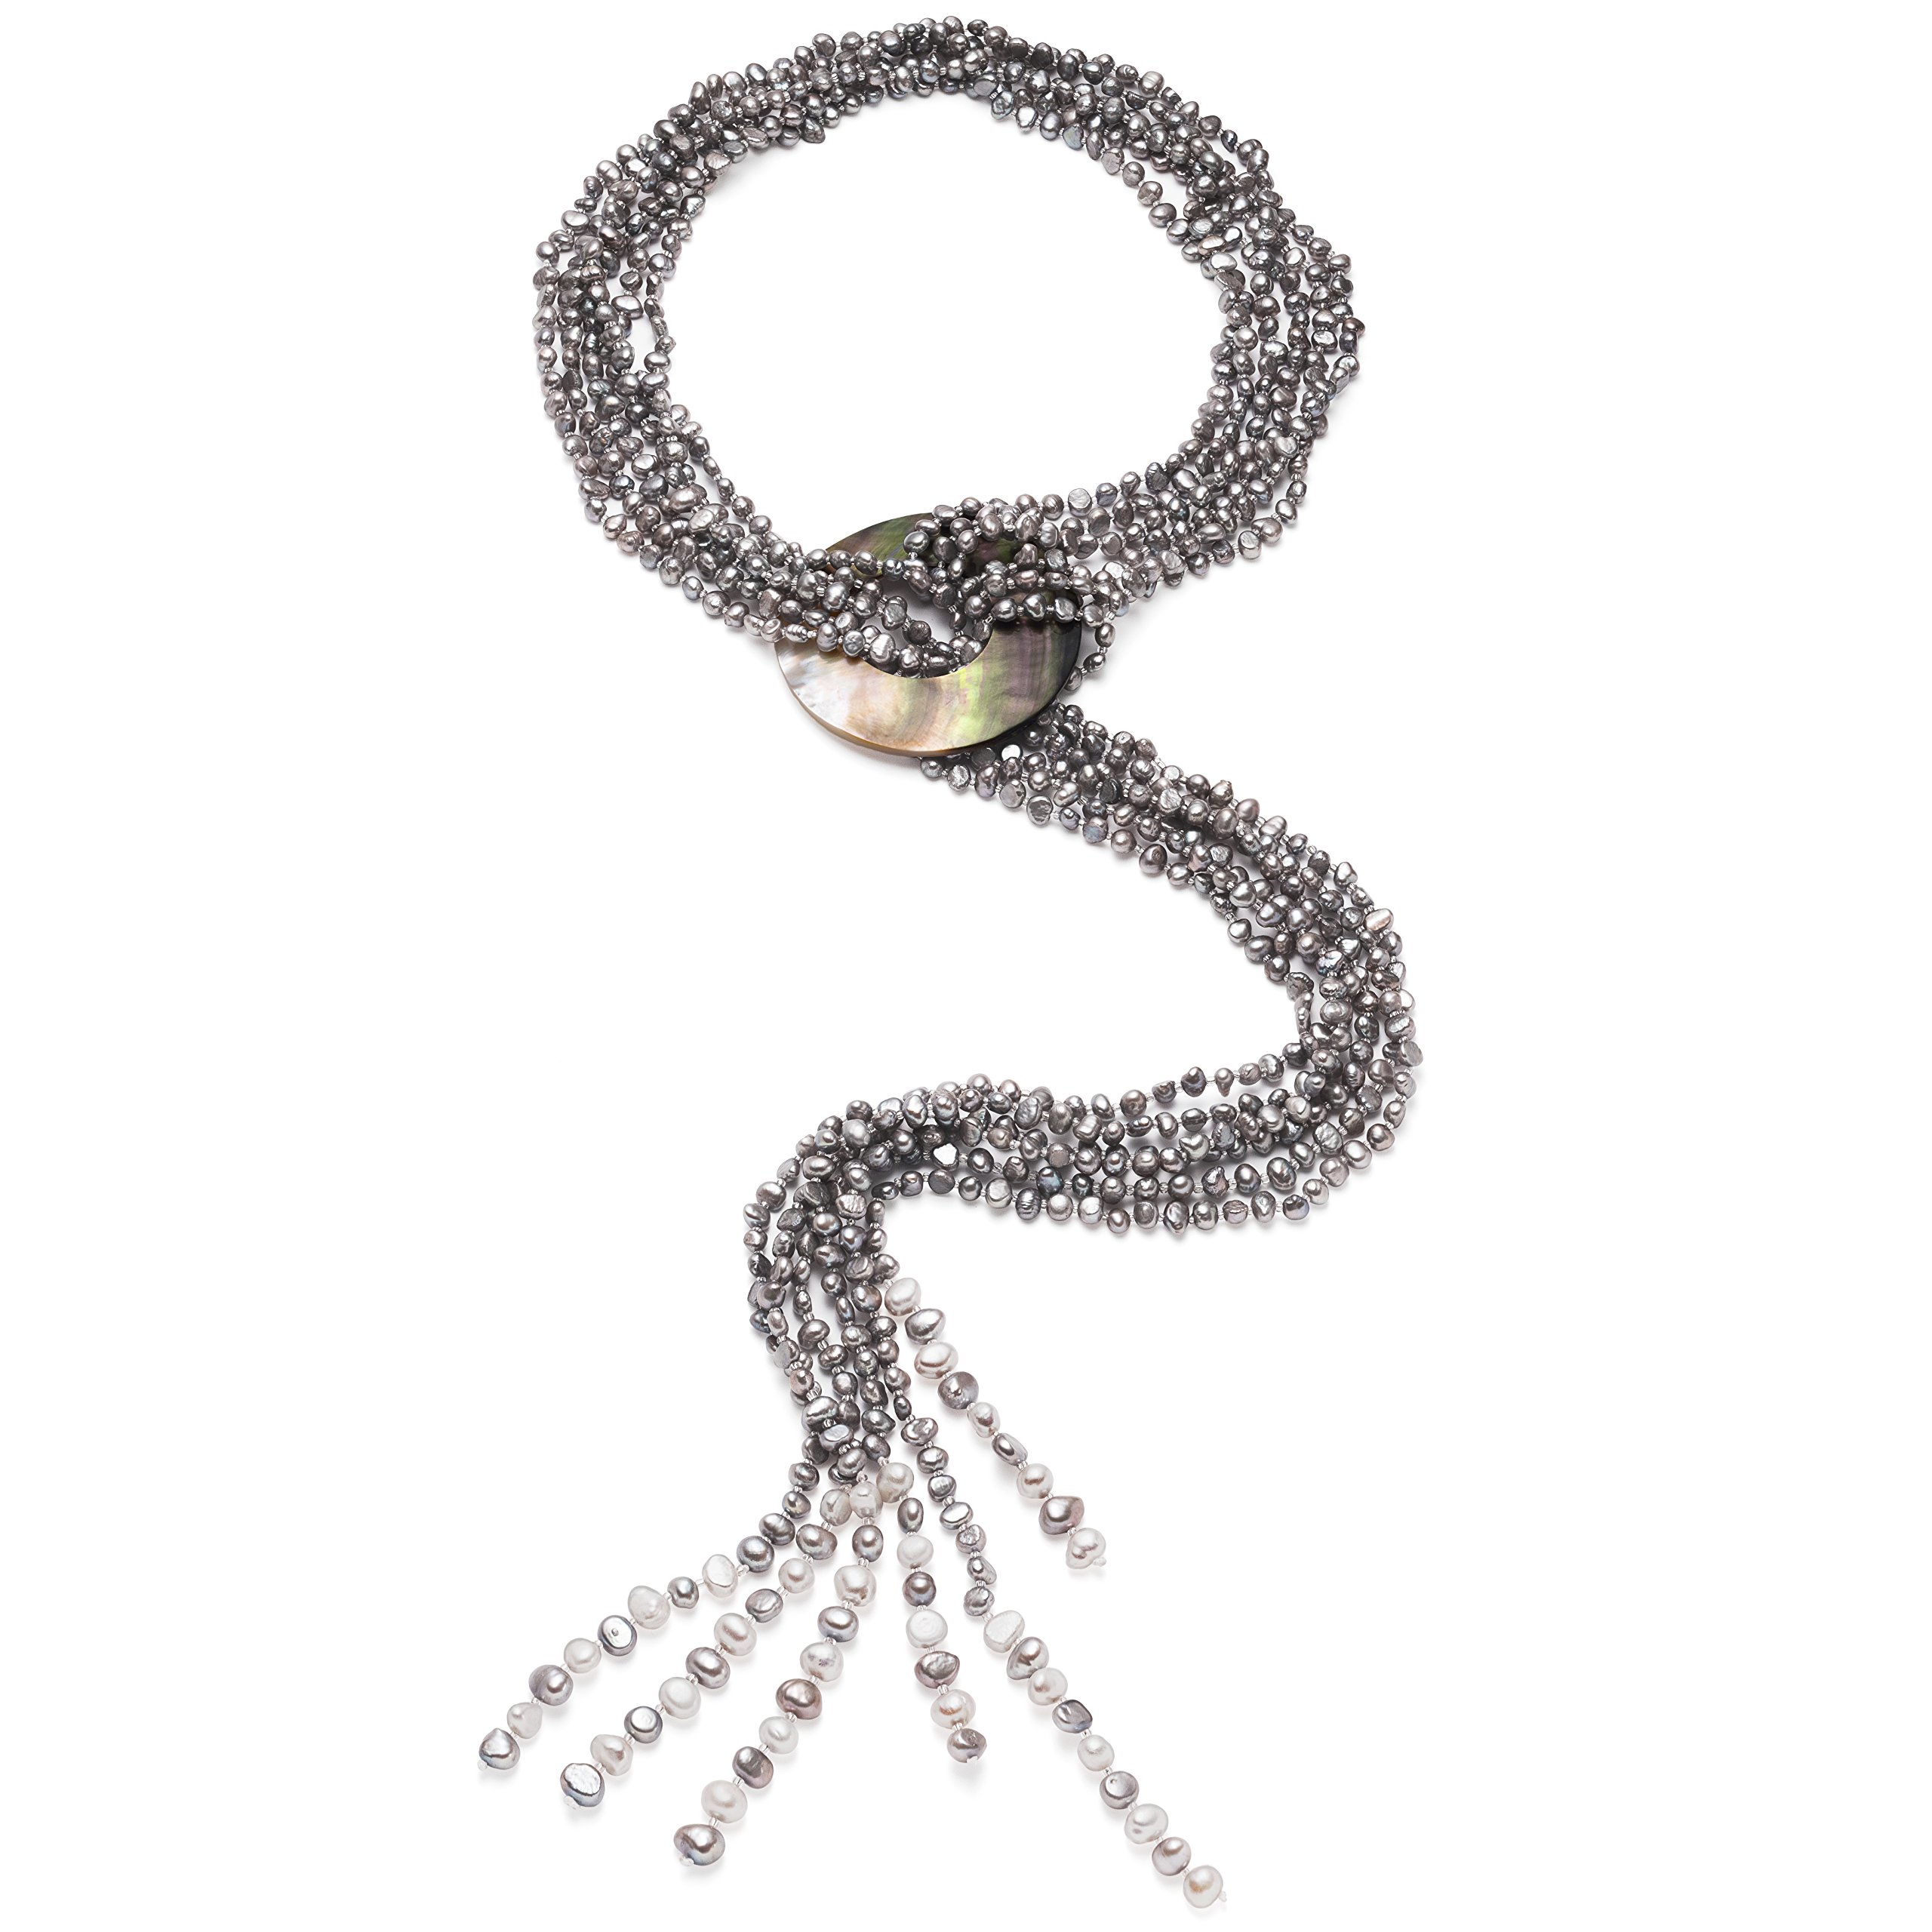 HinsonGayle 'Cleopatra' 6-Strand Silver Gray Cultured Freshwater Pearl & Shell Lariat Y Necklace-35 in length by HinsonGayle Fine Pearl Jewelry (Image #3)